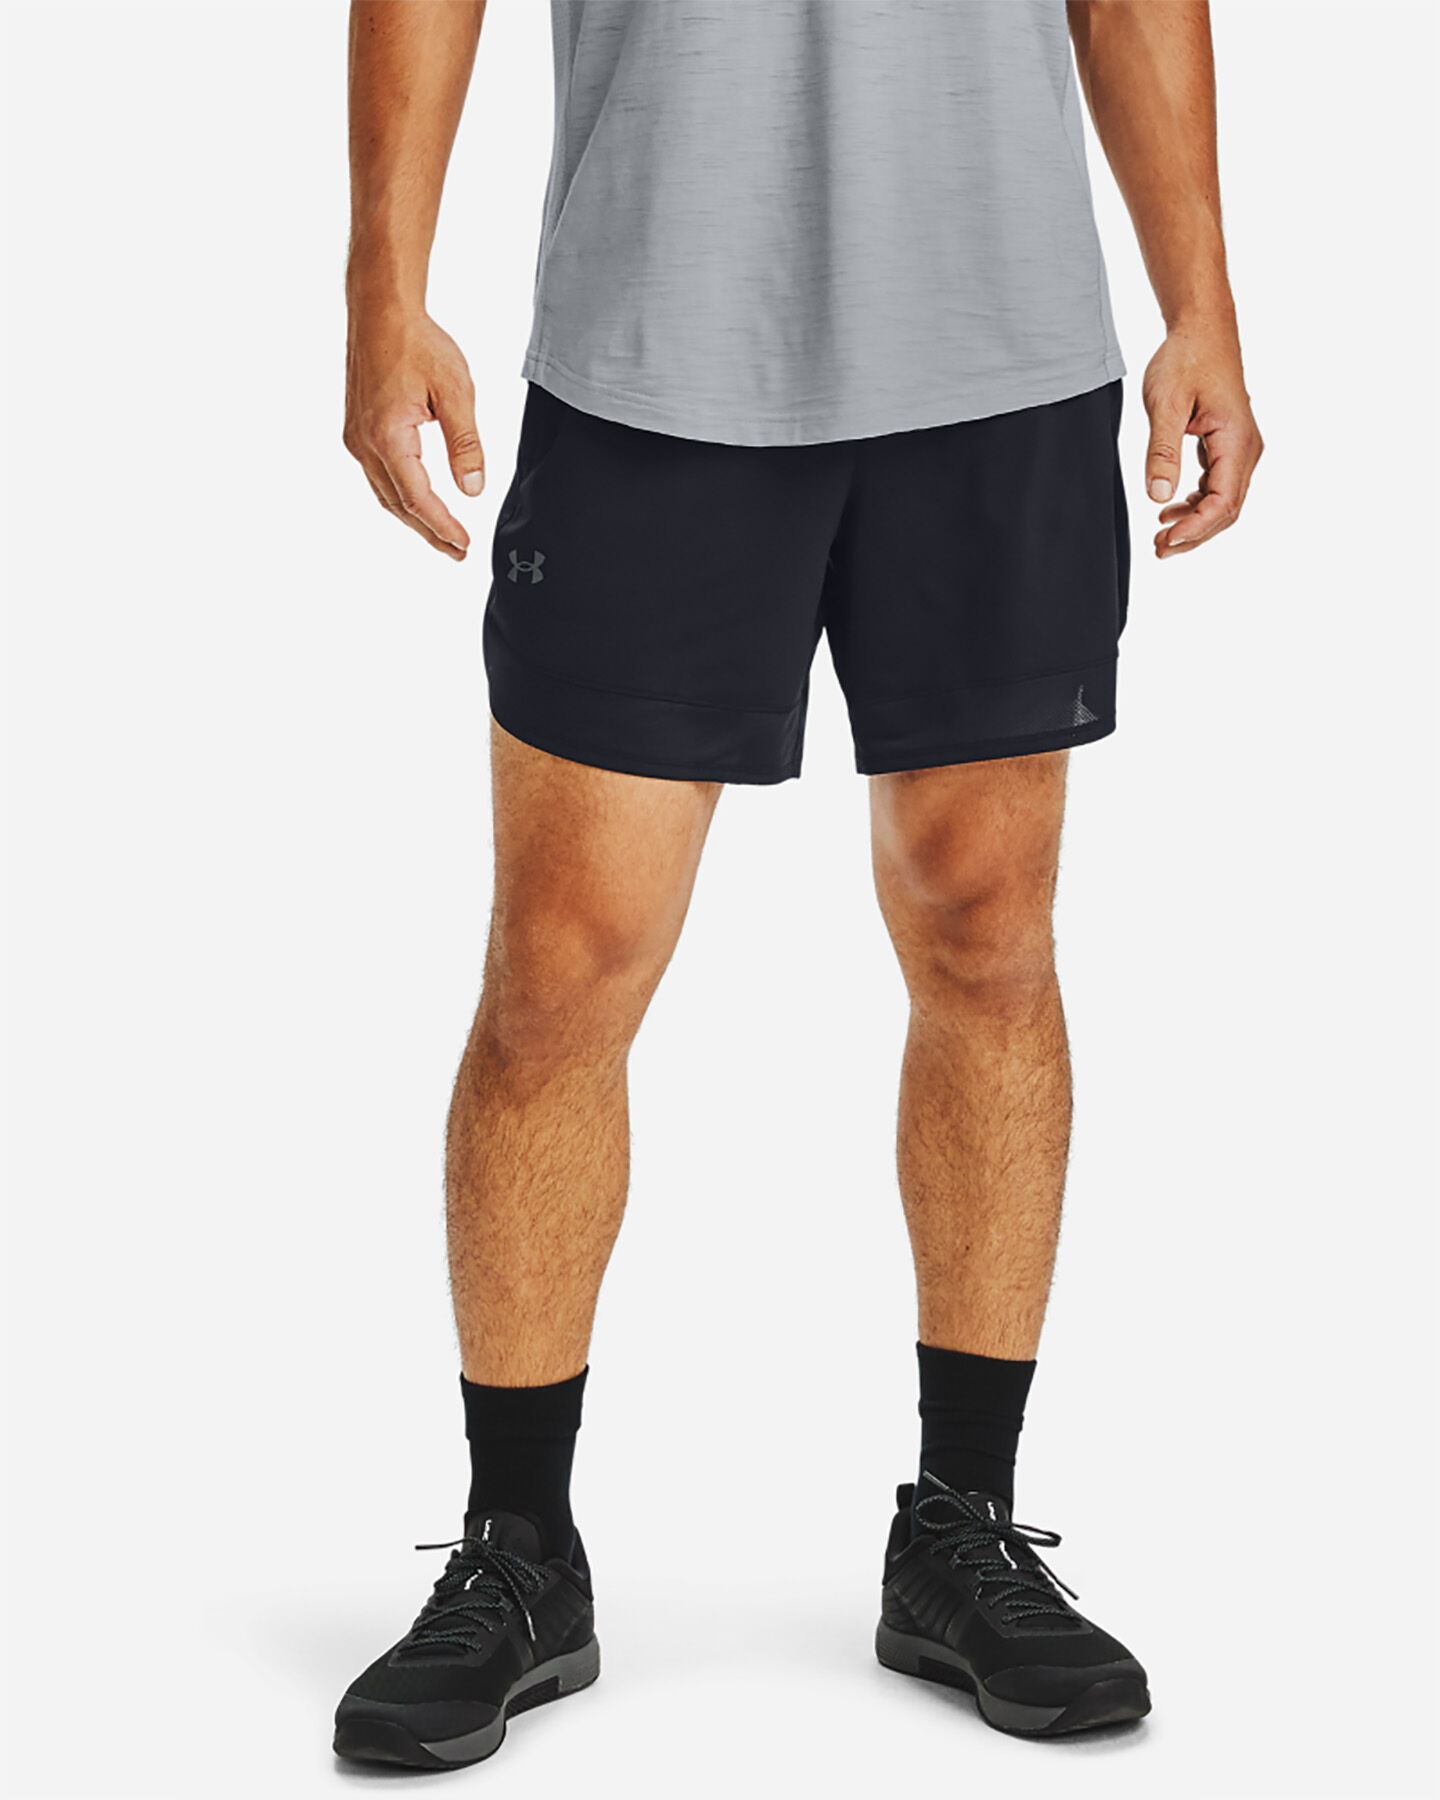 Pantalone training UNDER ARMOUR TRAINING STRETCH 7IN M S5229426 scatto 2